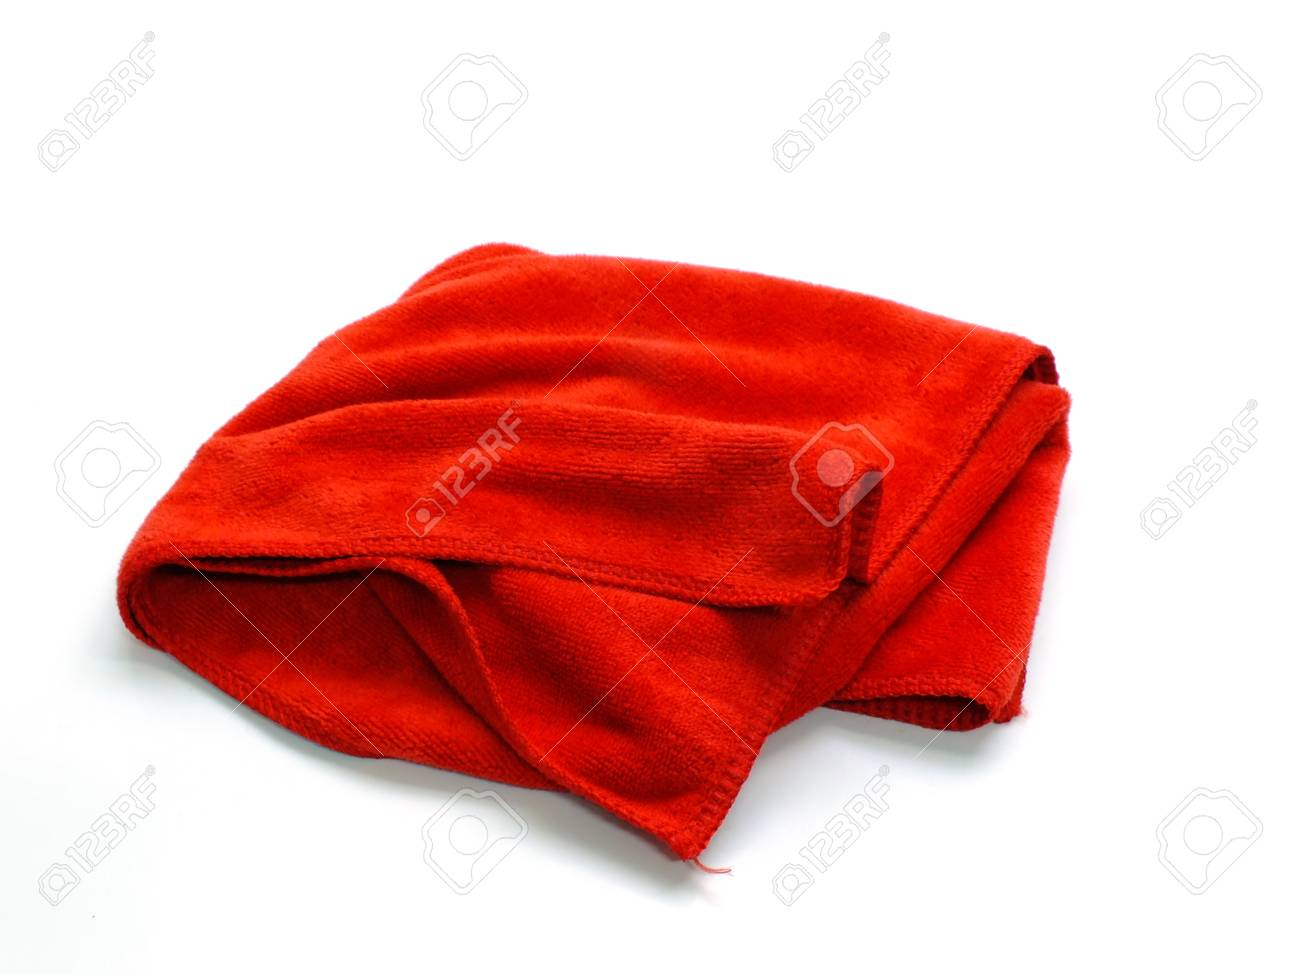 2e8d8ad00defd9 red microfiber cloth on a white background Stock Photo - 95985507